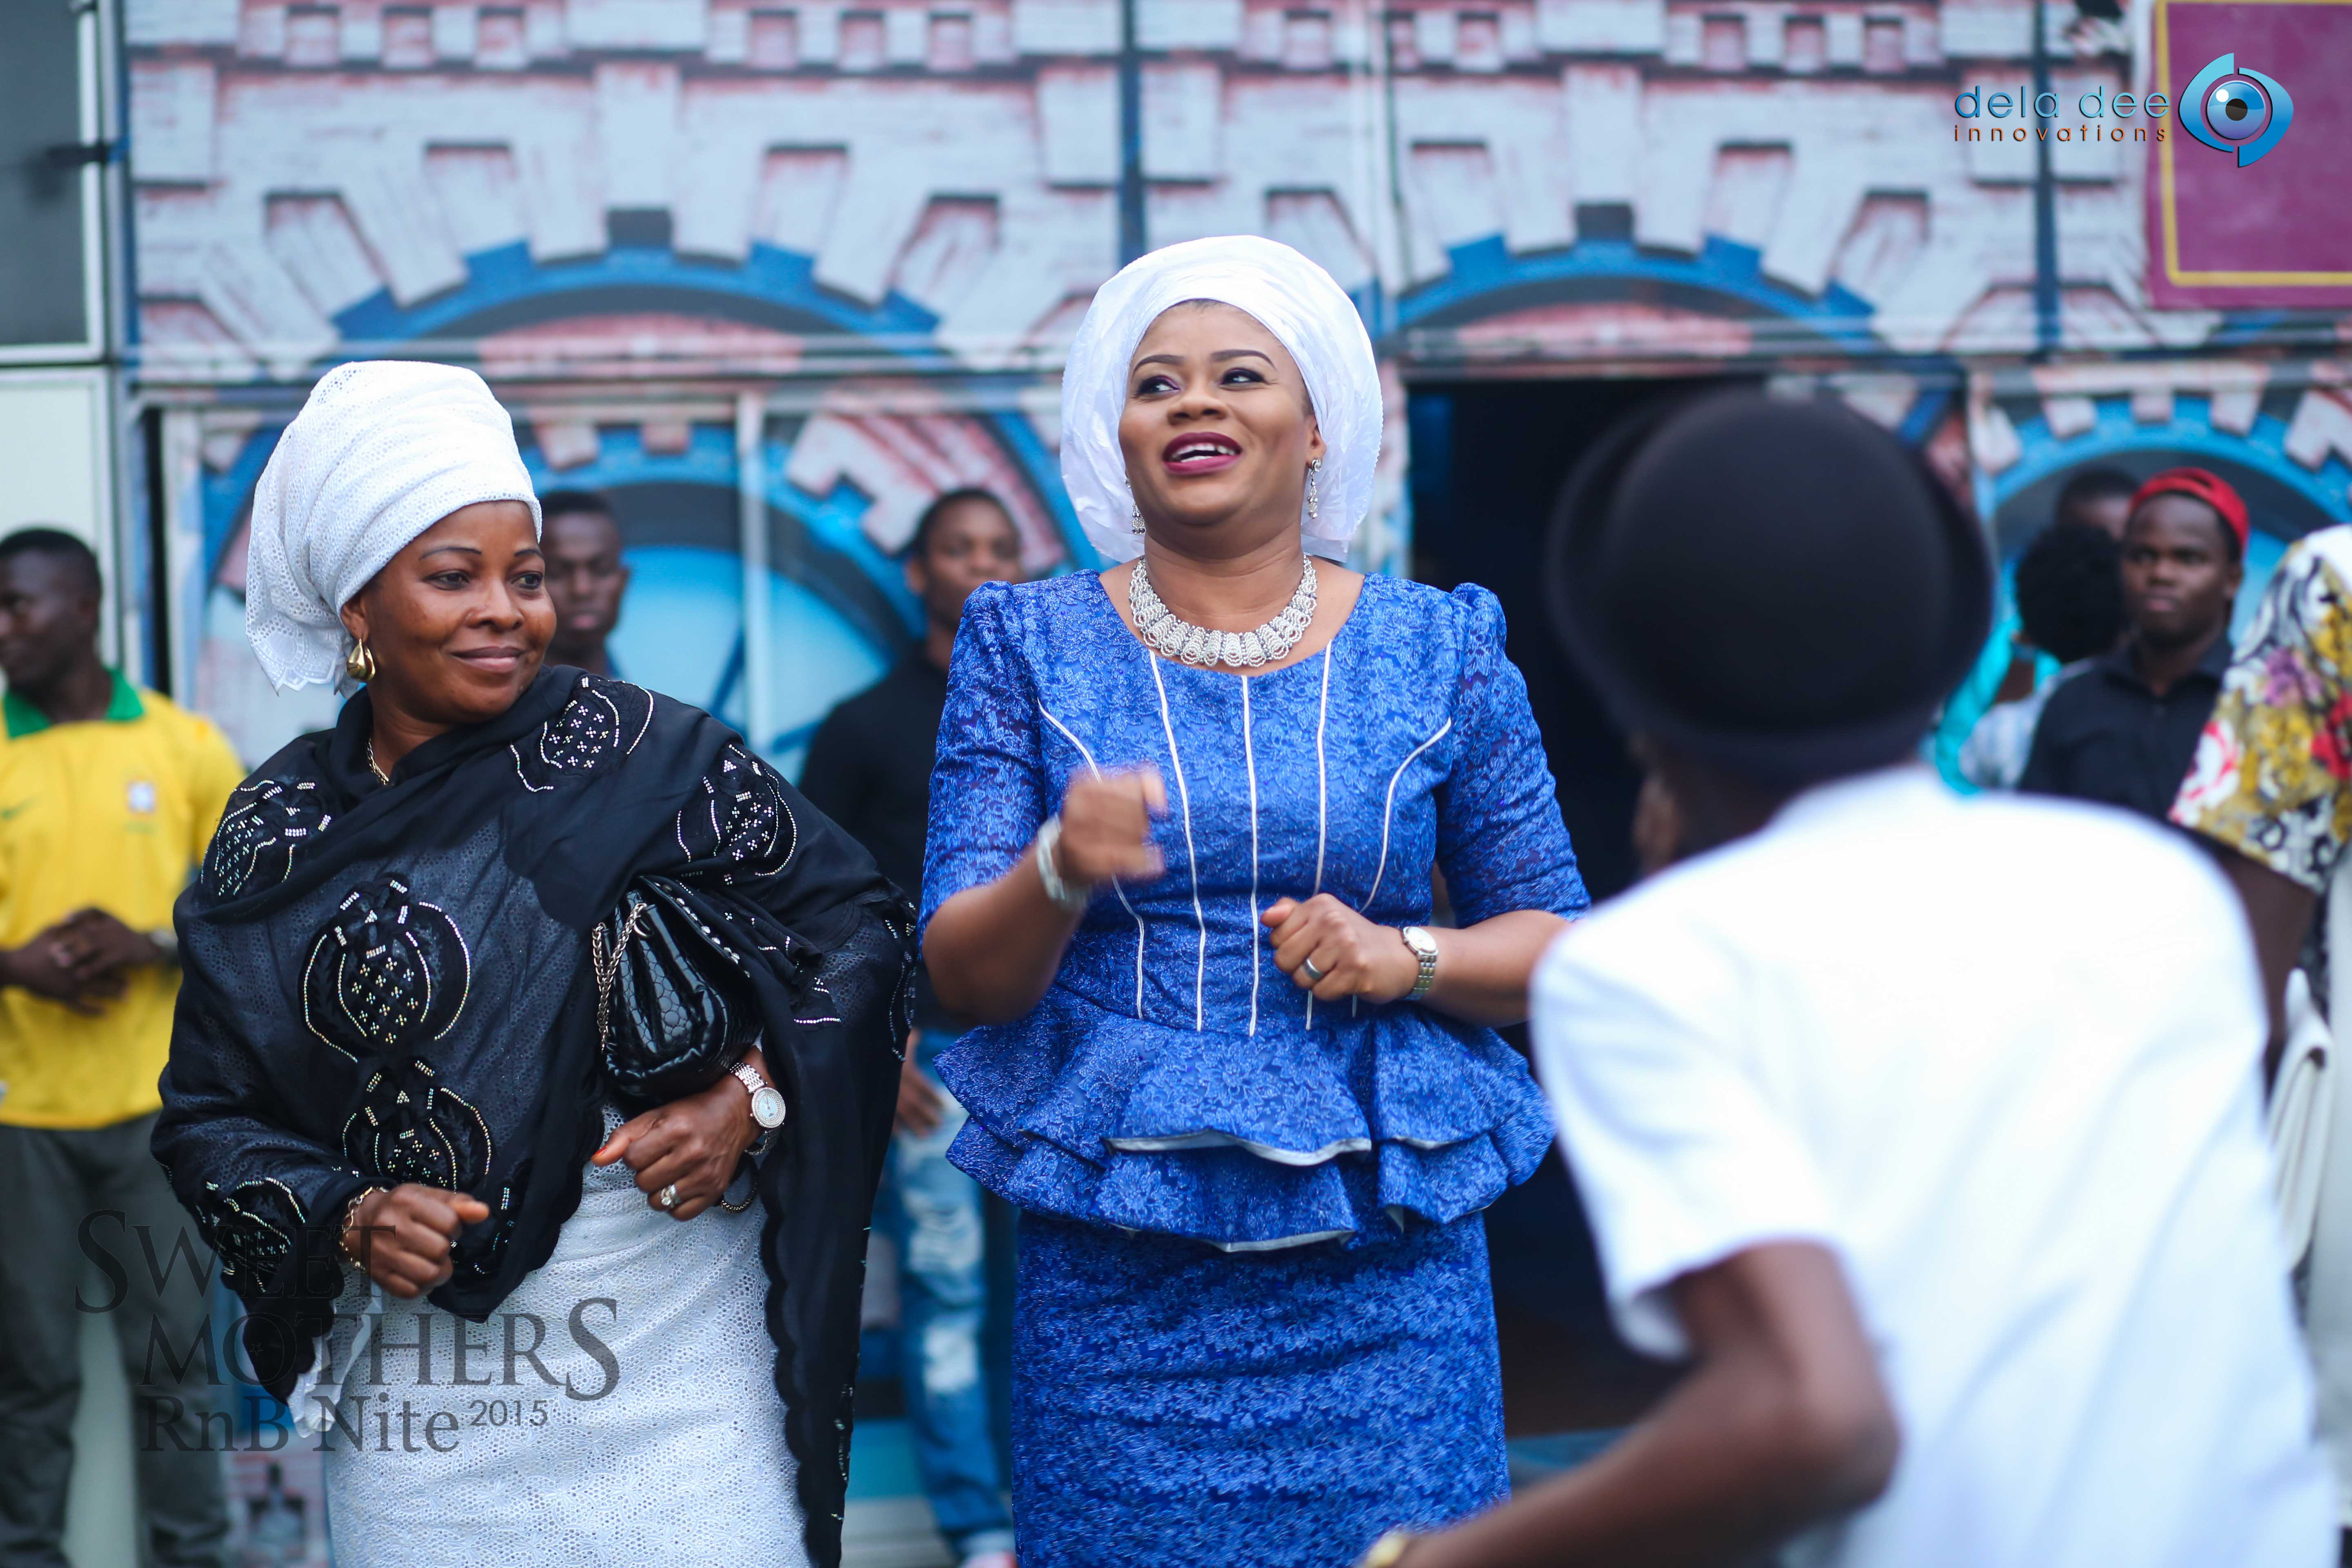 Pictures from the SweetMothers R'nB Nite 2015